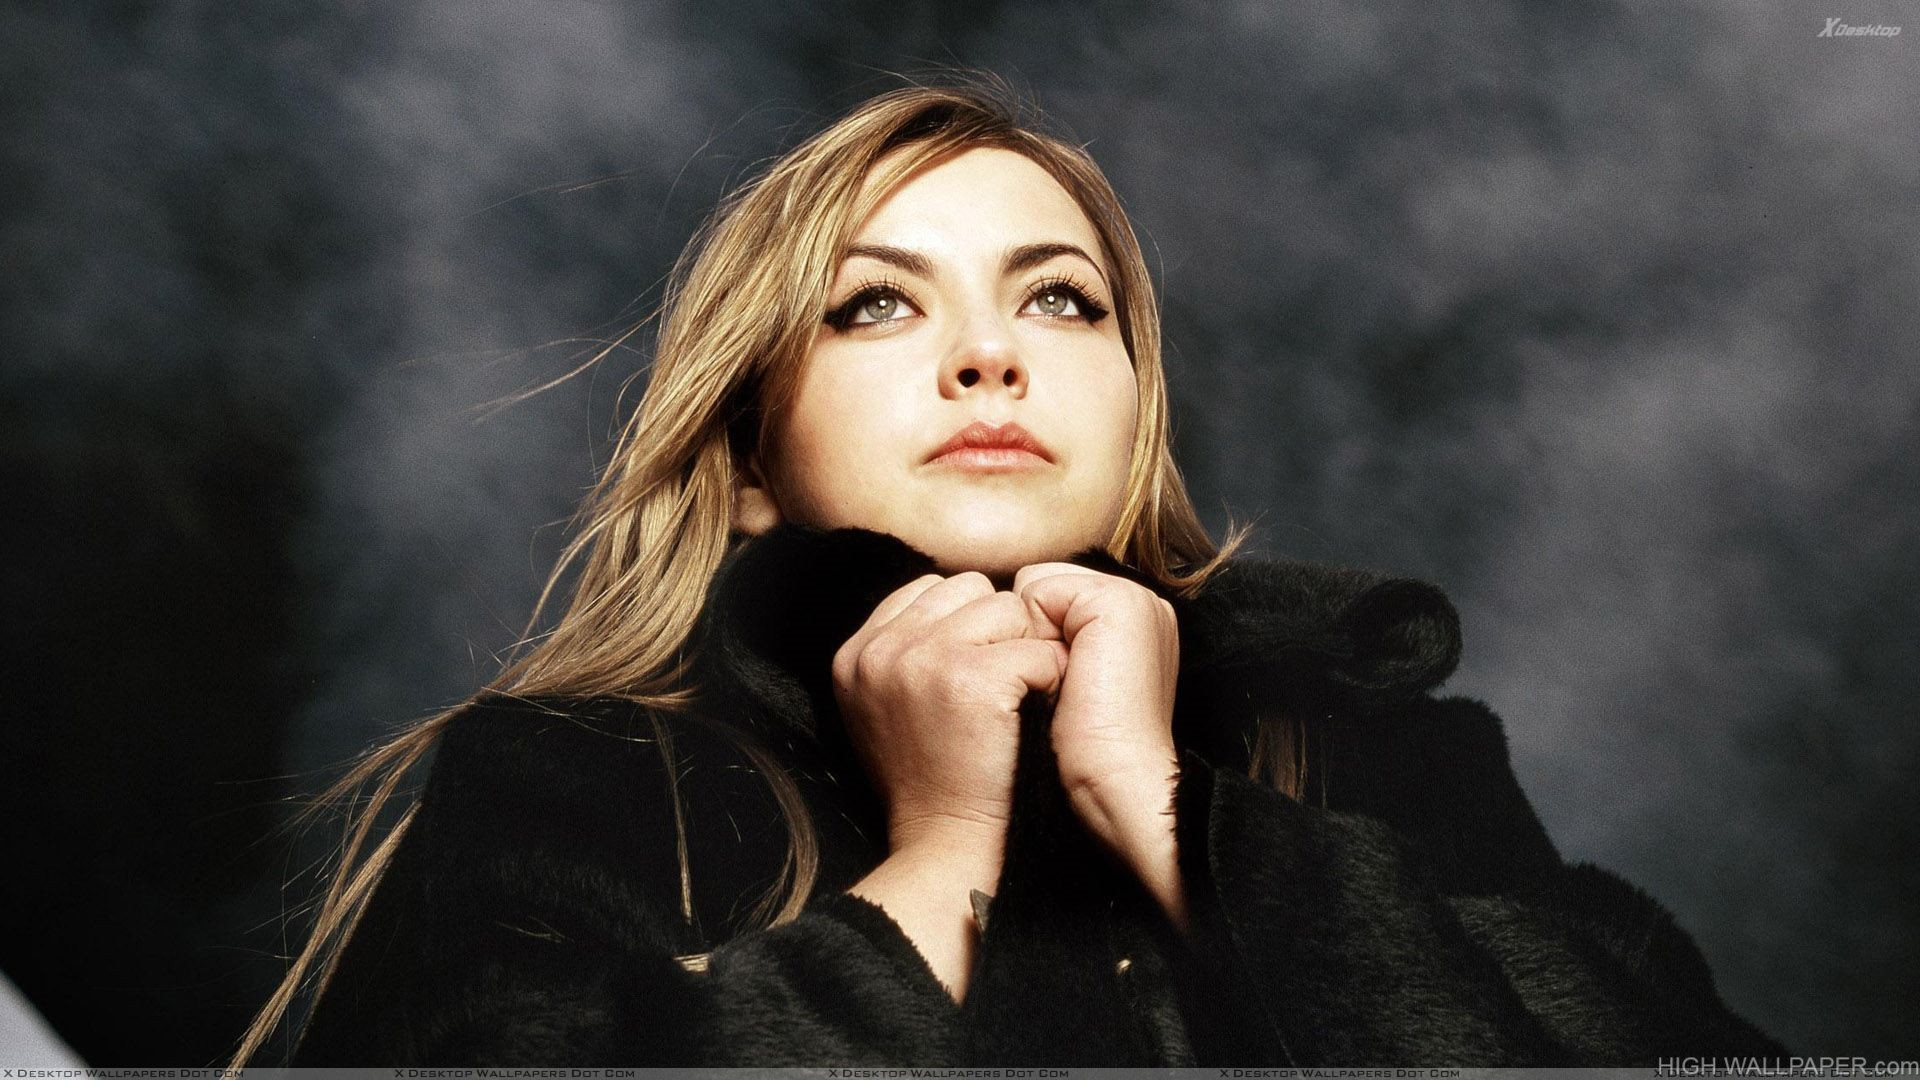 Charlotte Church Thinking In Black Dress Photoshoot